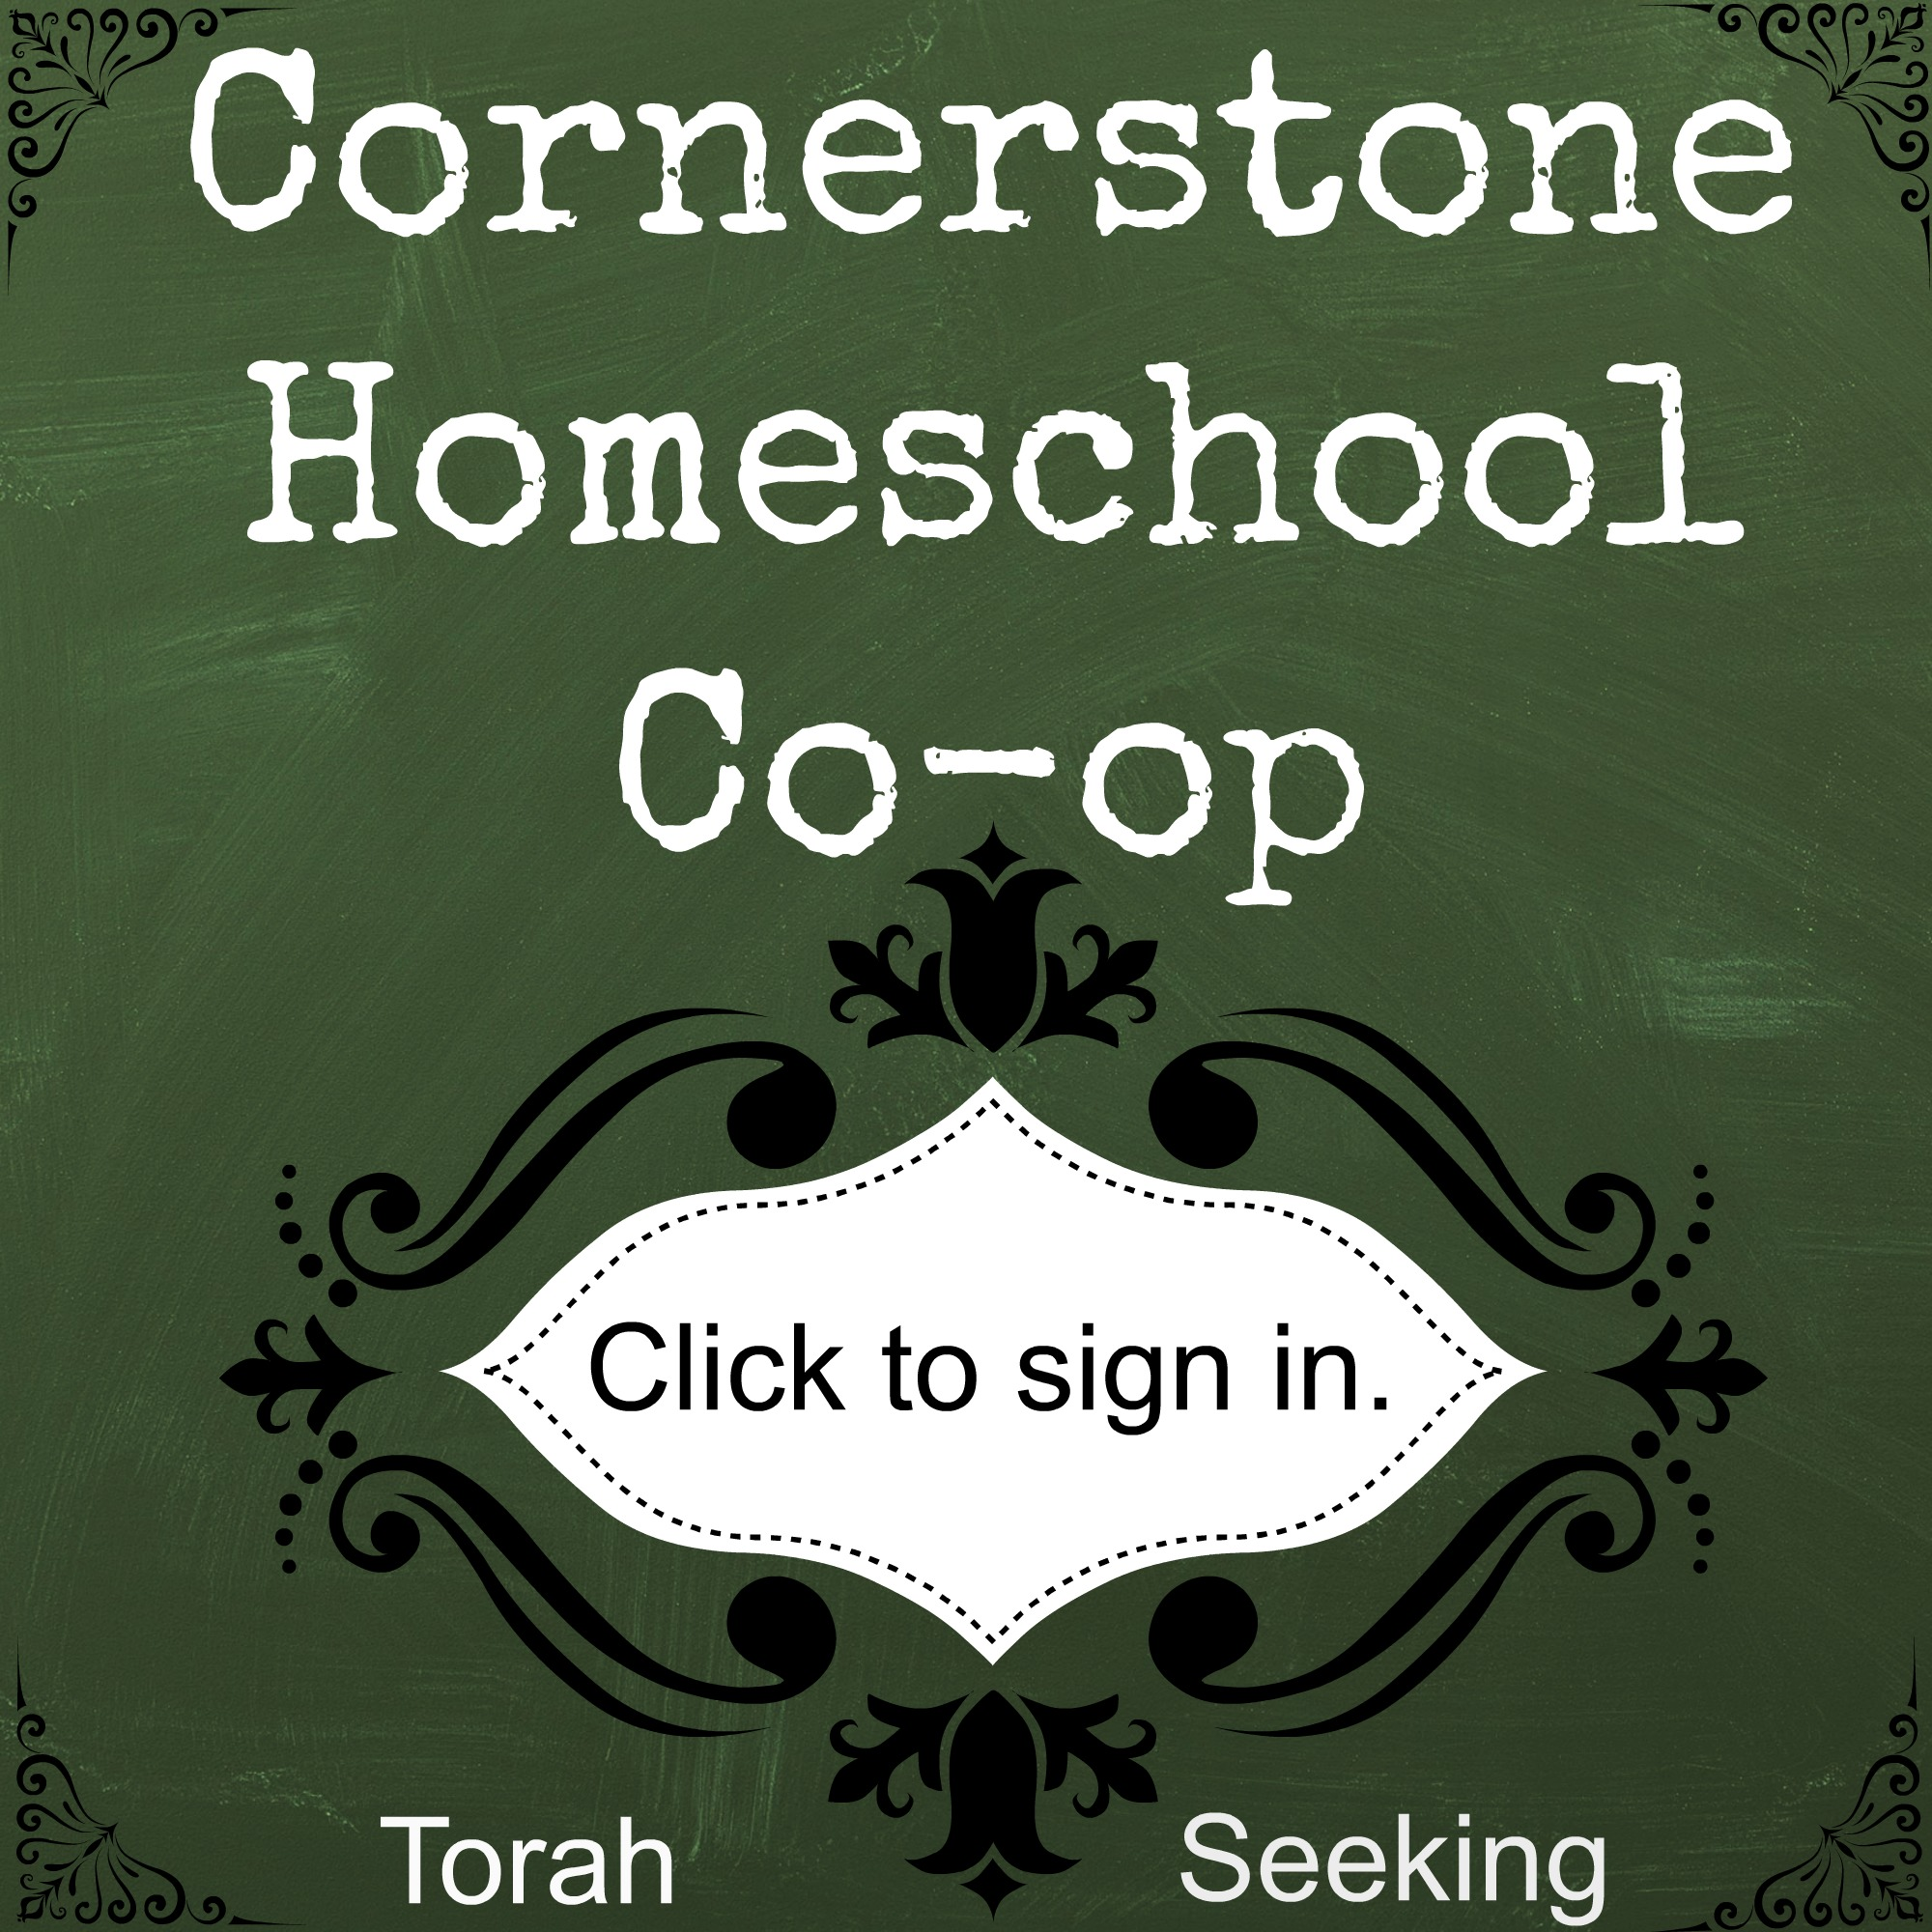 Login to Cornerston Homeschool Group